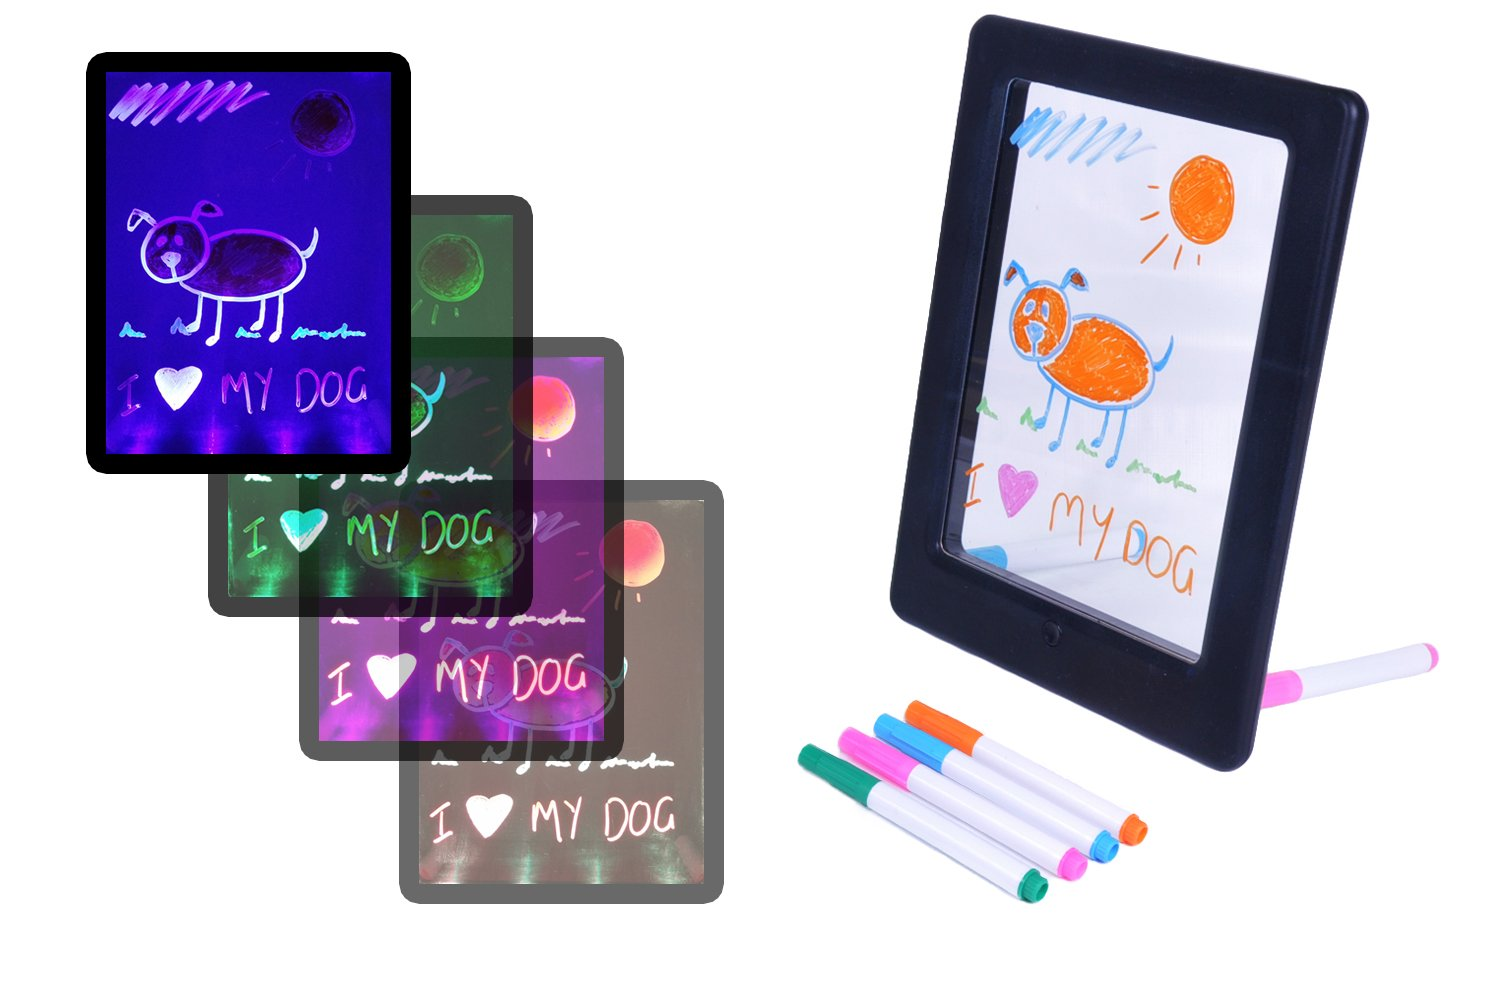 Color Splurge LED Drawing Board For Children - Erasable Ink - Changes The Color of Your Illuminated Writing & Artistic Drawings - Perfect for Kids with FREE Cartoon Stencil